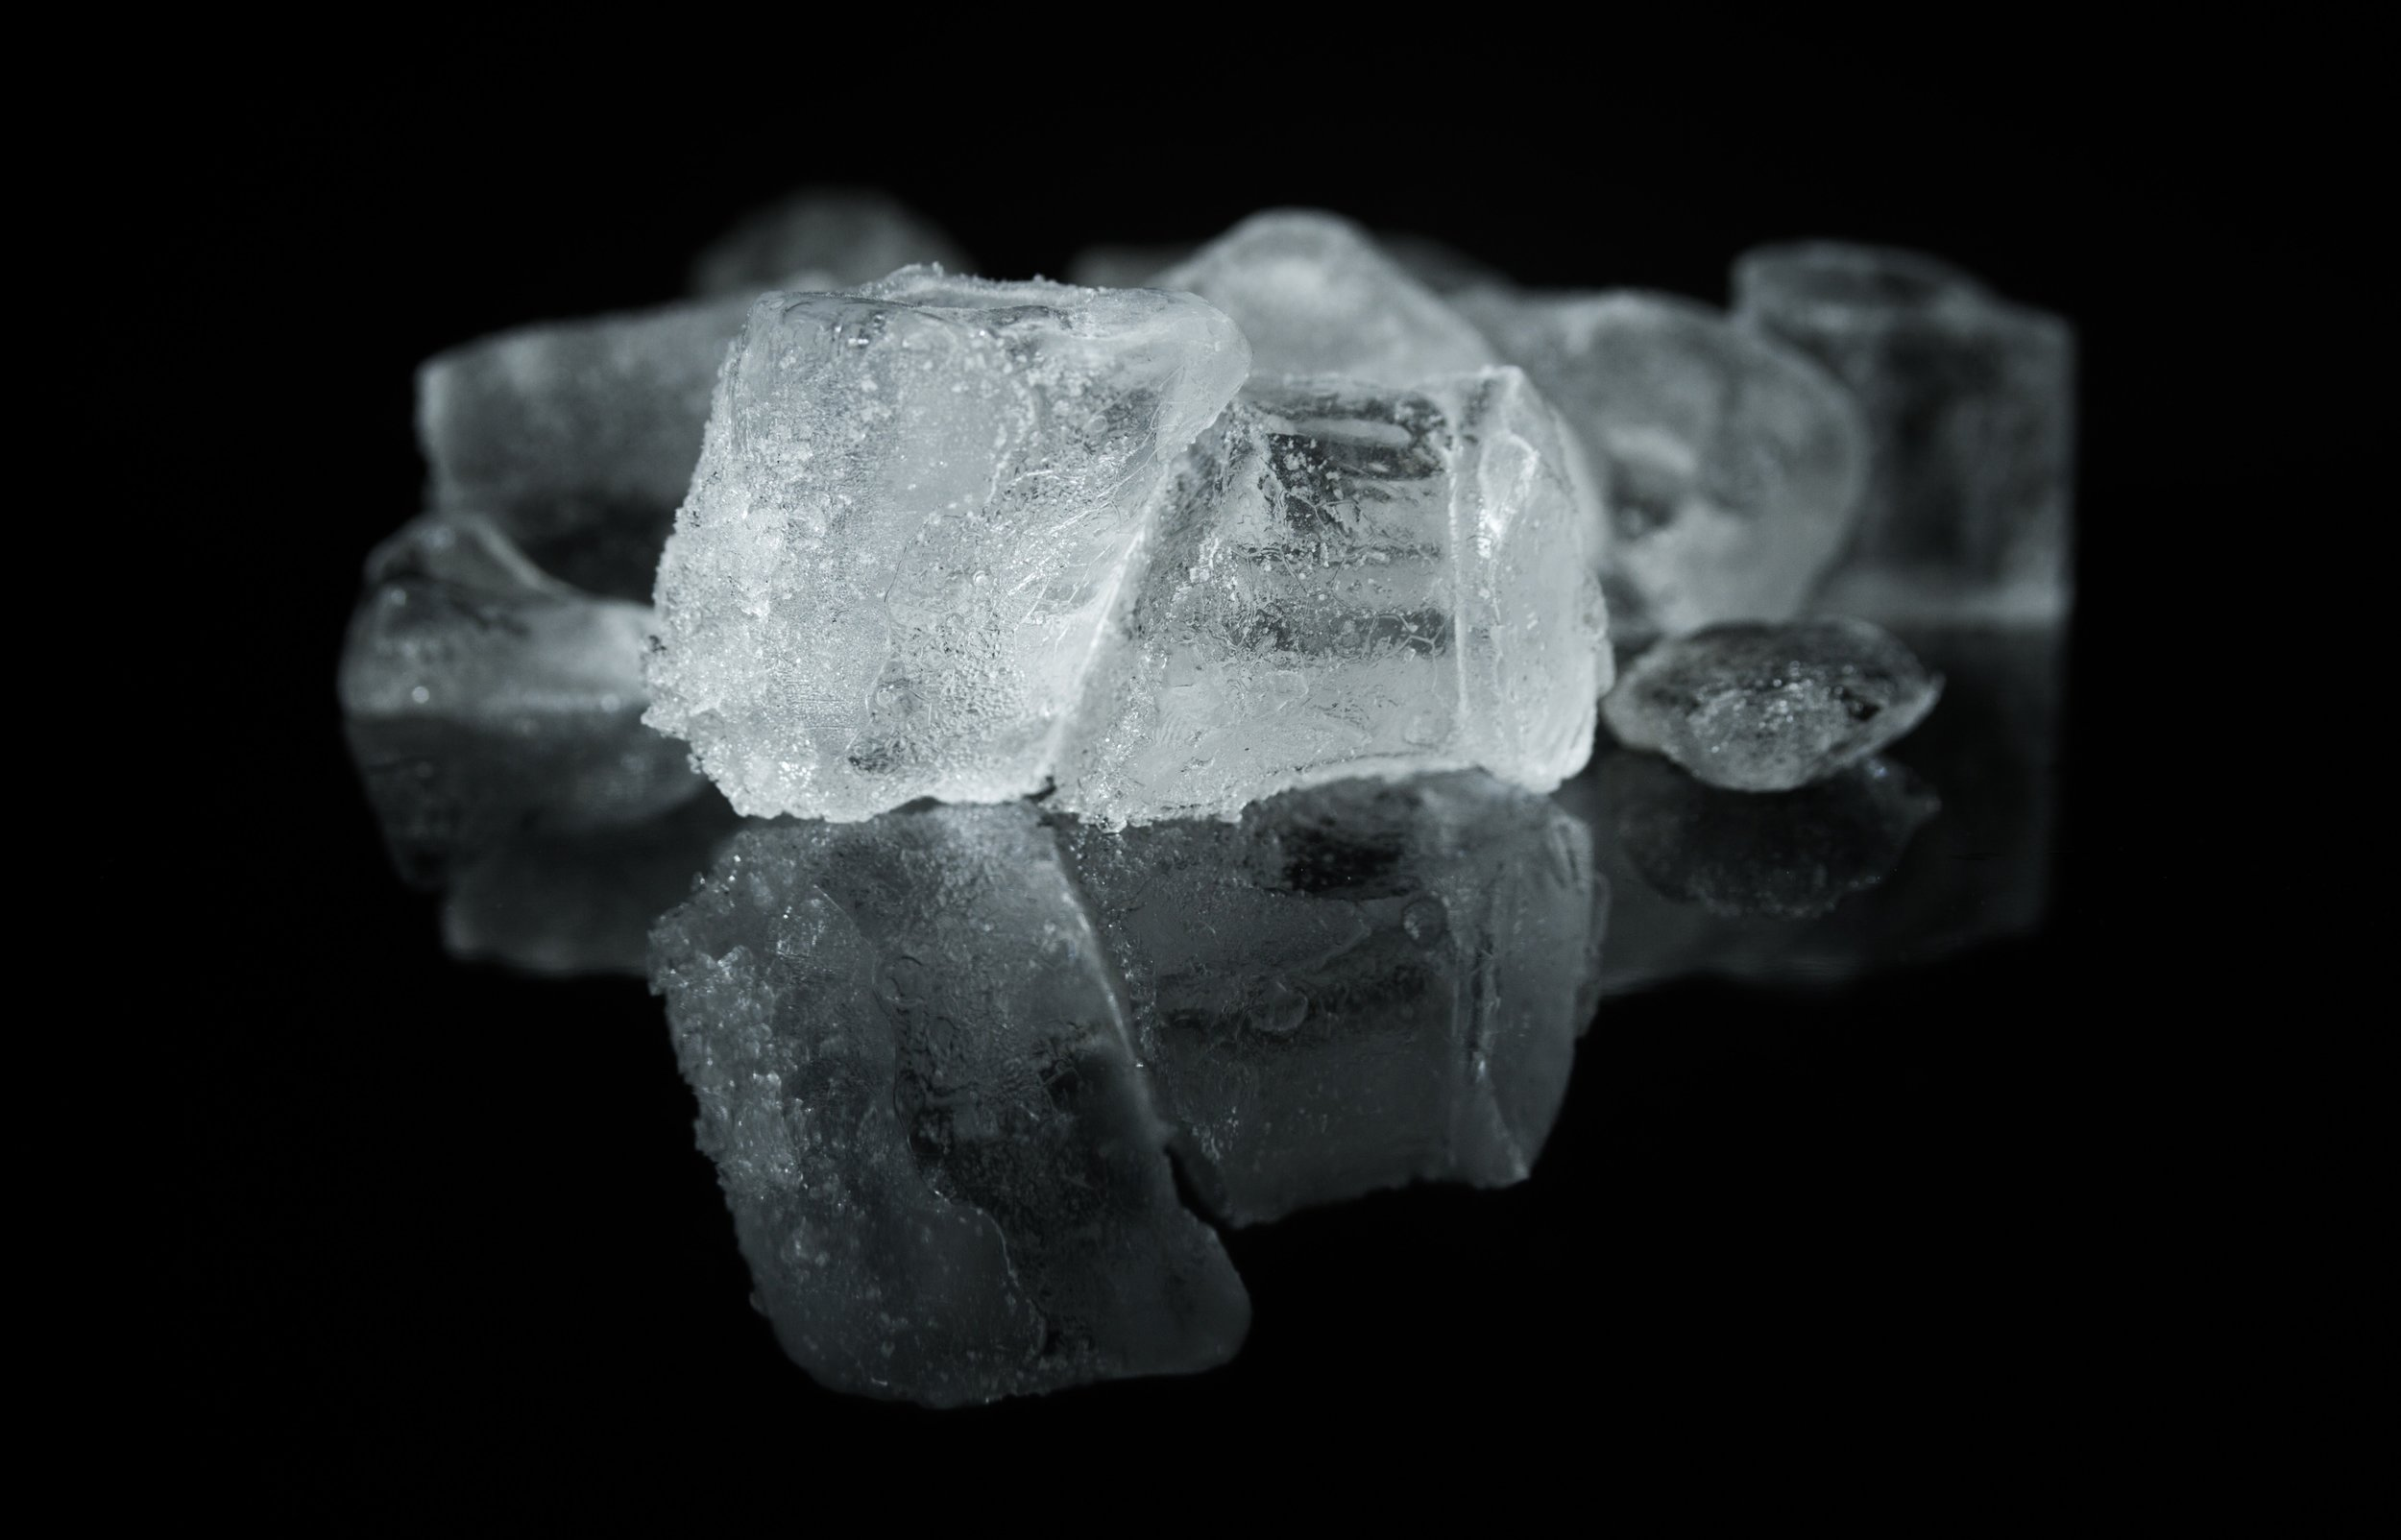 clear-close-up-cold-434259.jpg